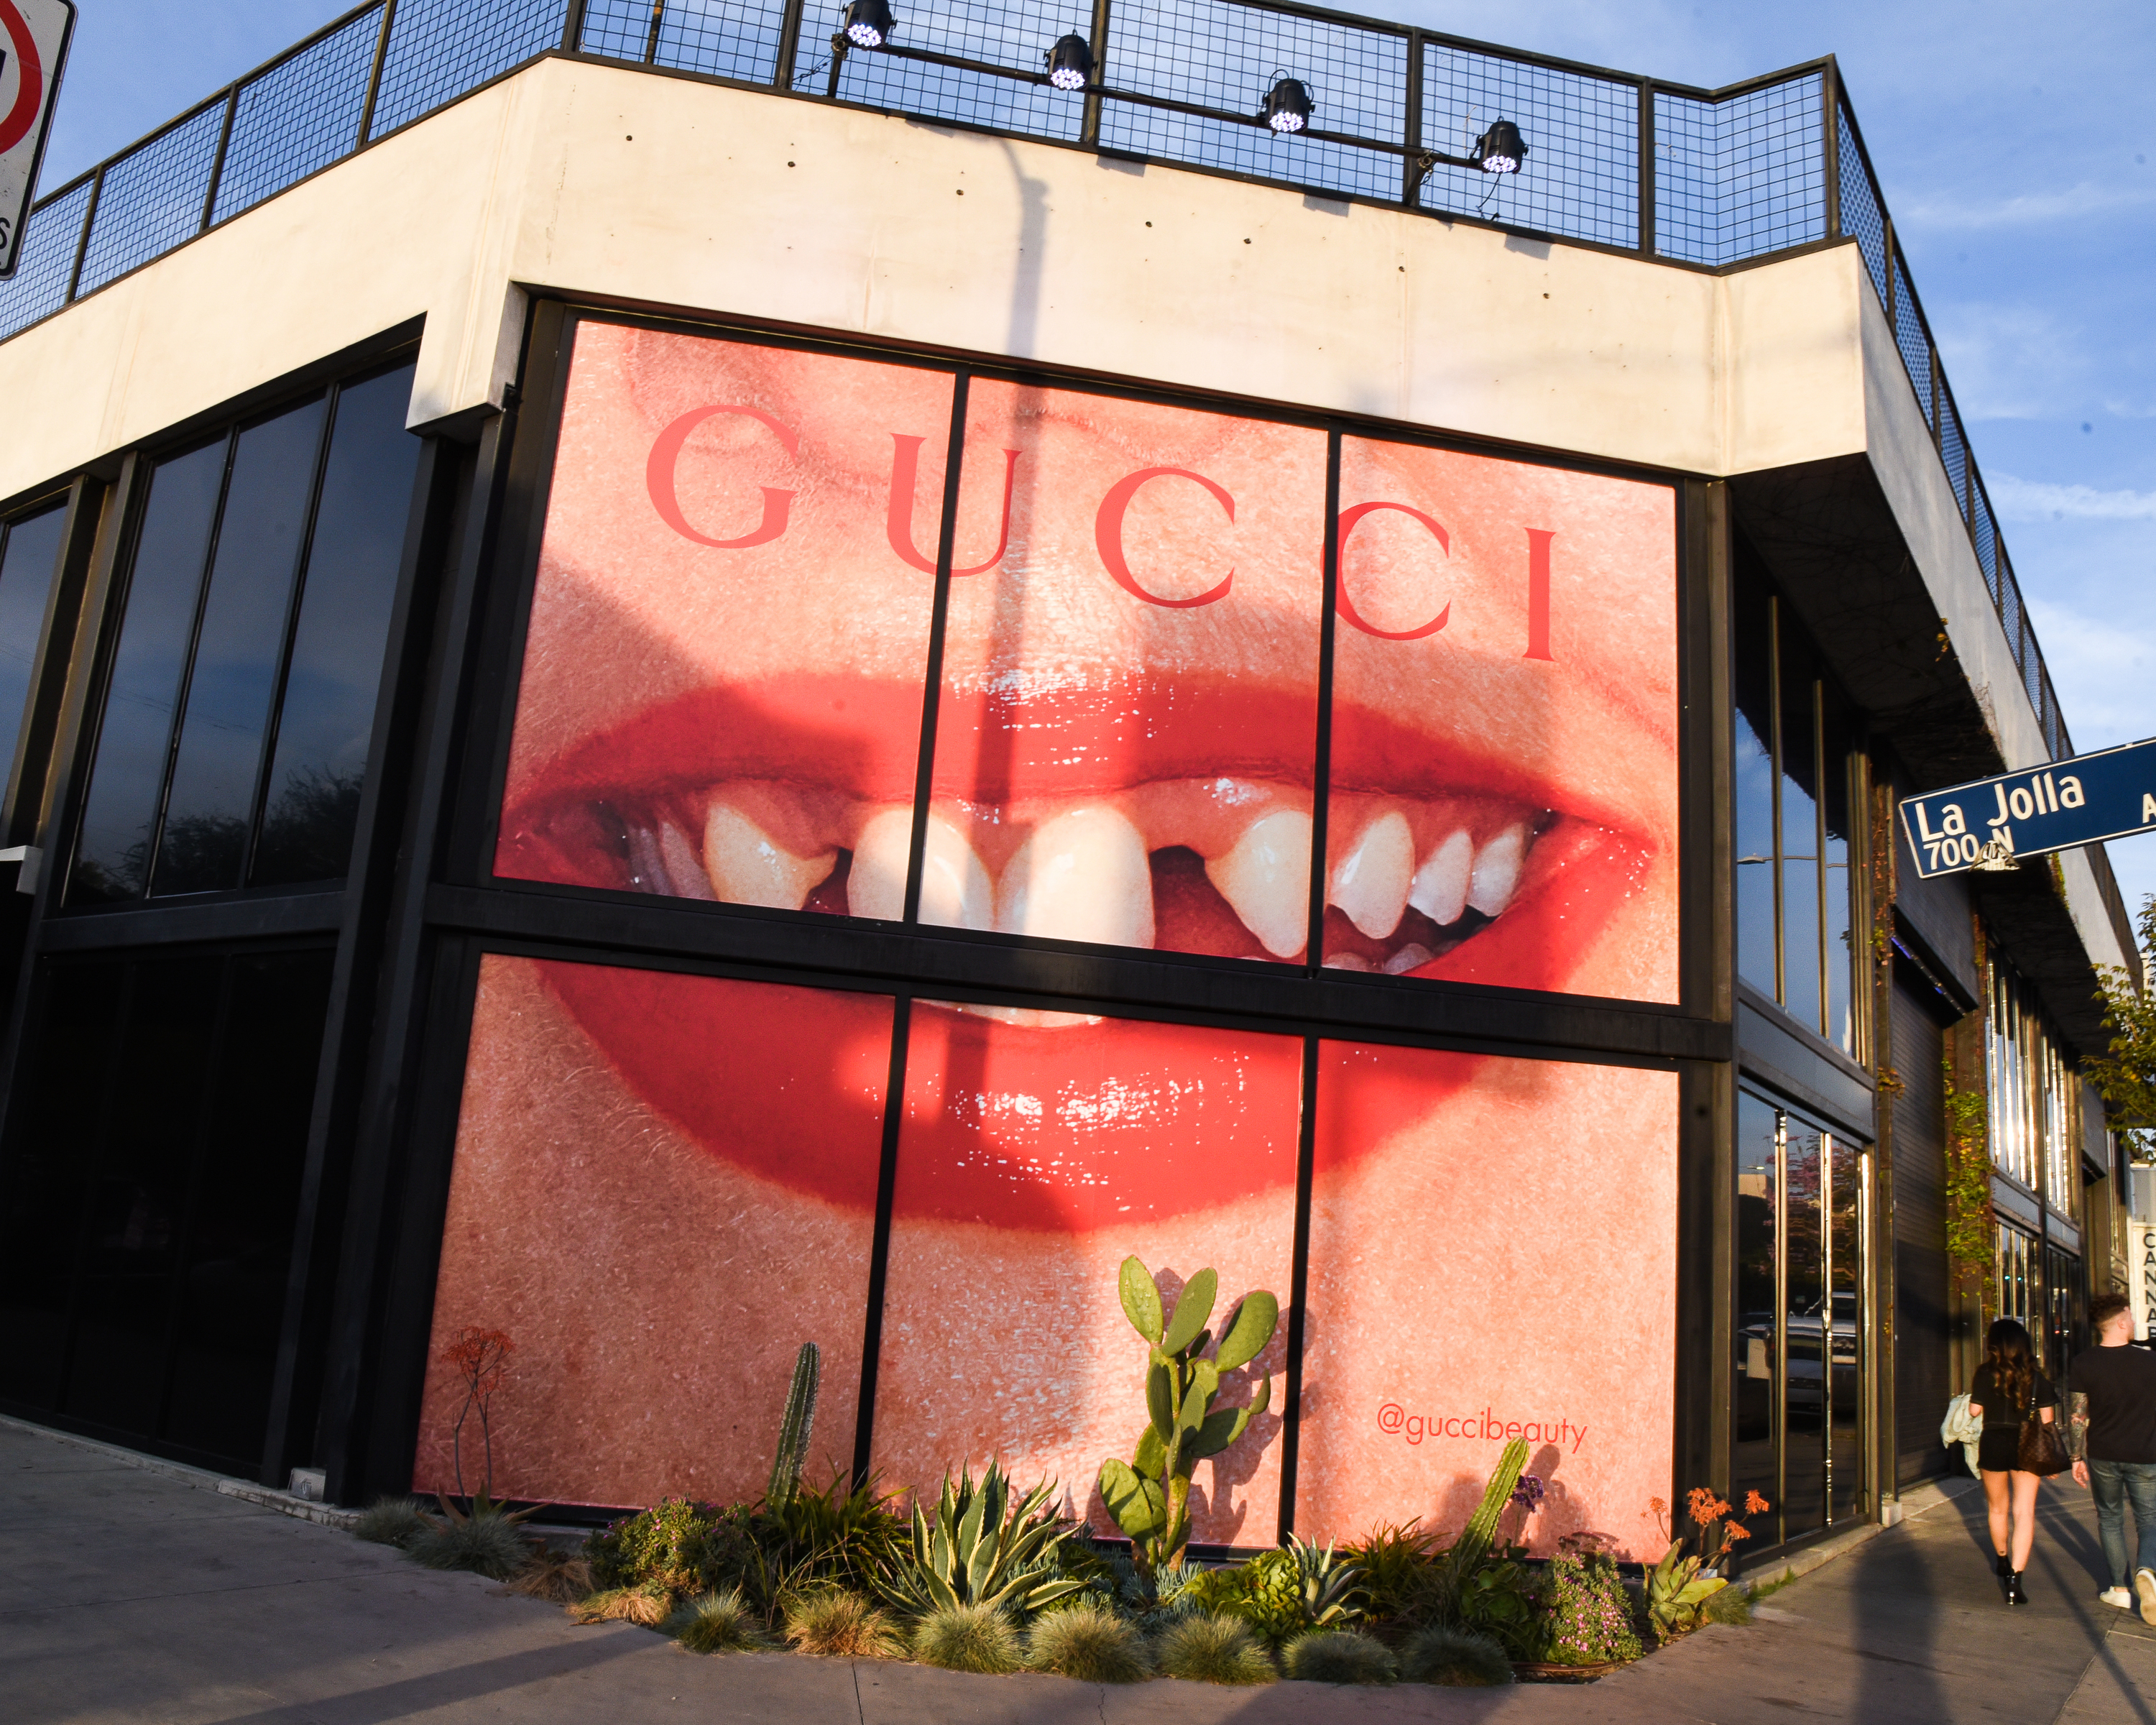 GUCCI BEAUTY CELEBRATES THE LAUNCH OF THE NEW GUCCI MASCARA L'OBSCUR WITH AN EXPERIENTIAL POP-UP IN LOS ANGELES_